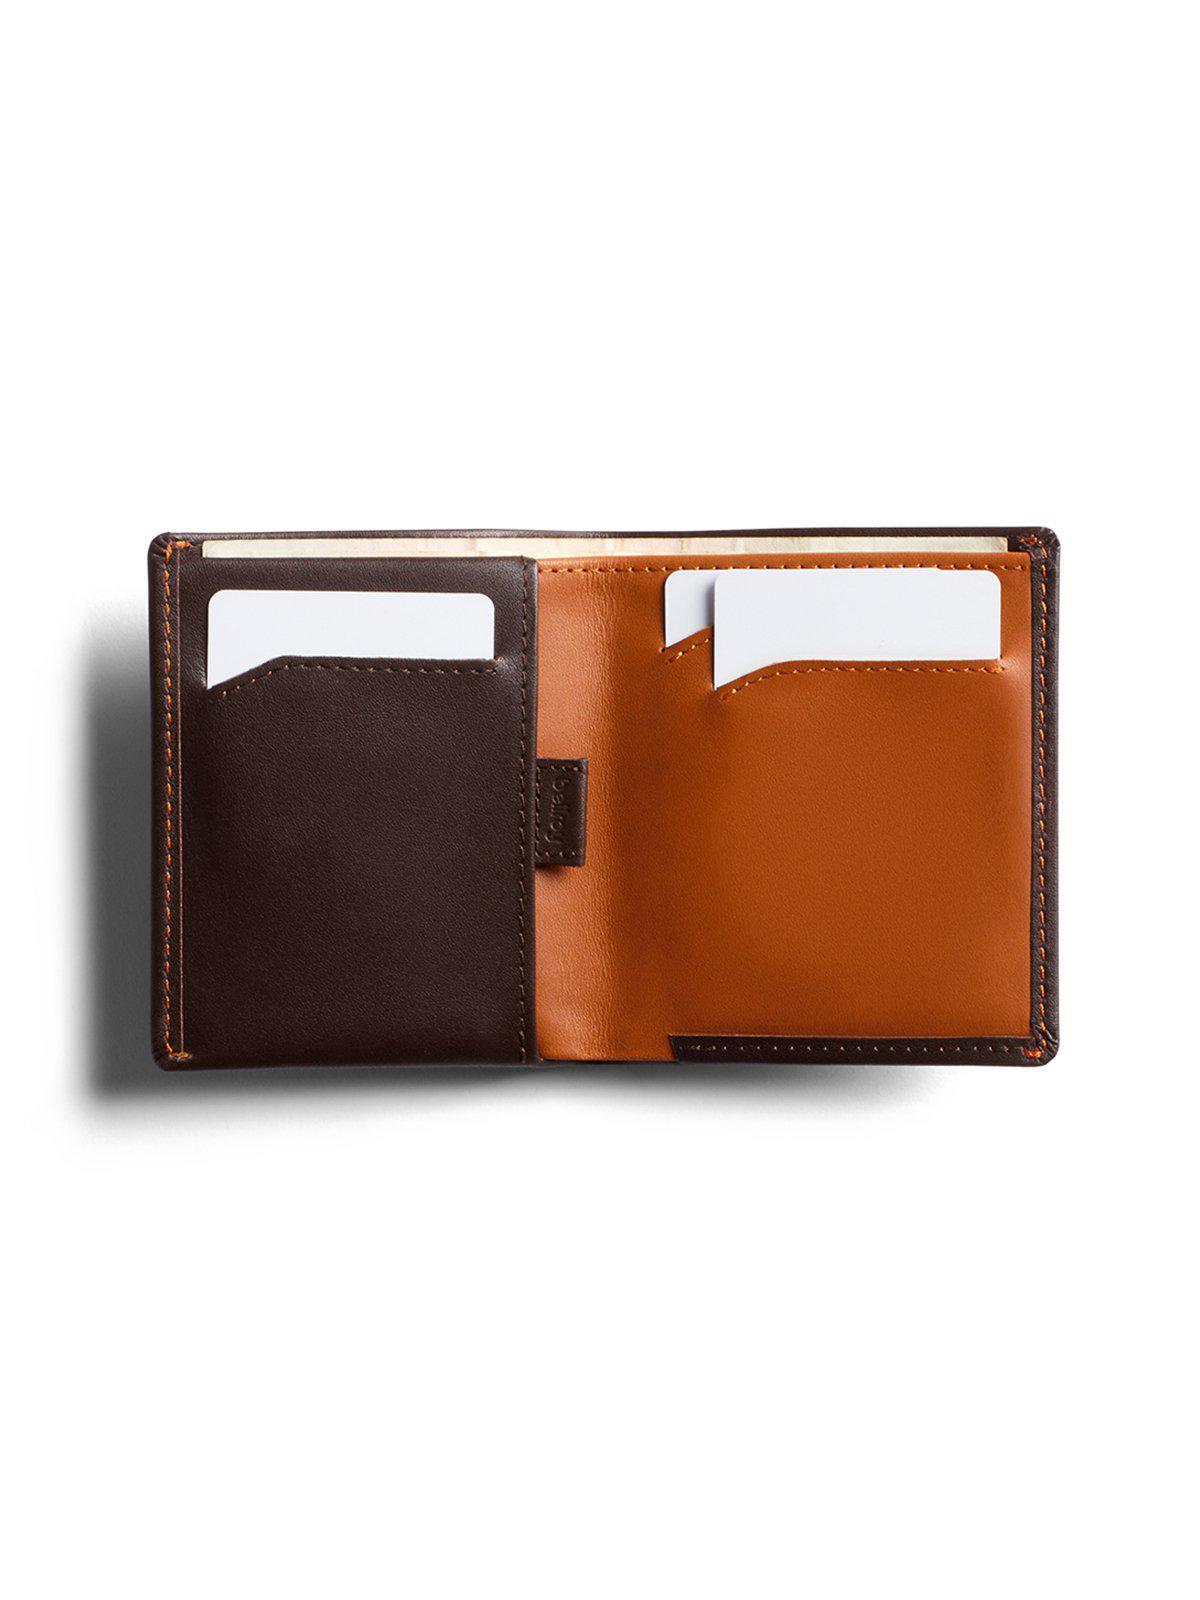 Bellroy Note Sleeve Wallet Java RFID - MORE by Morello Indonesia